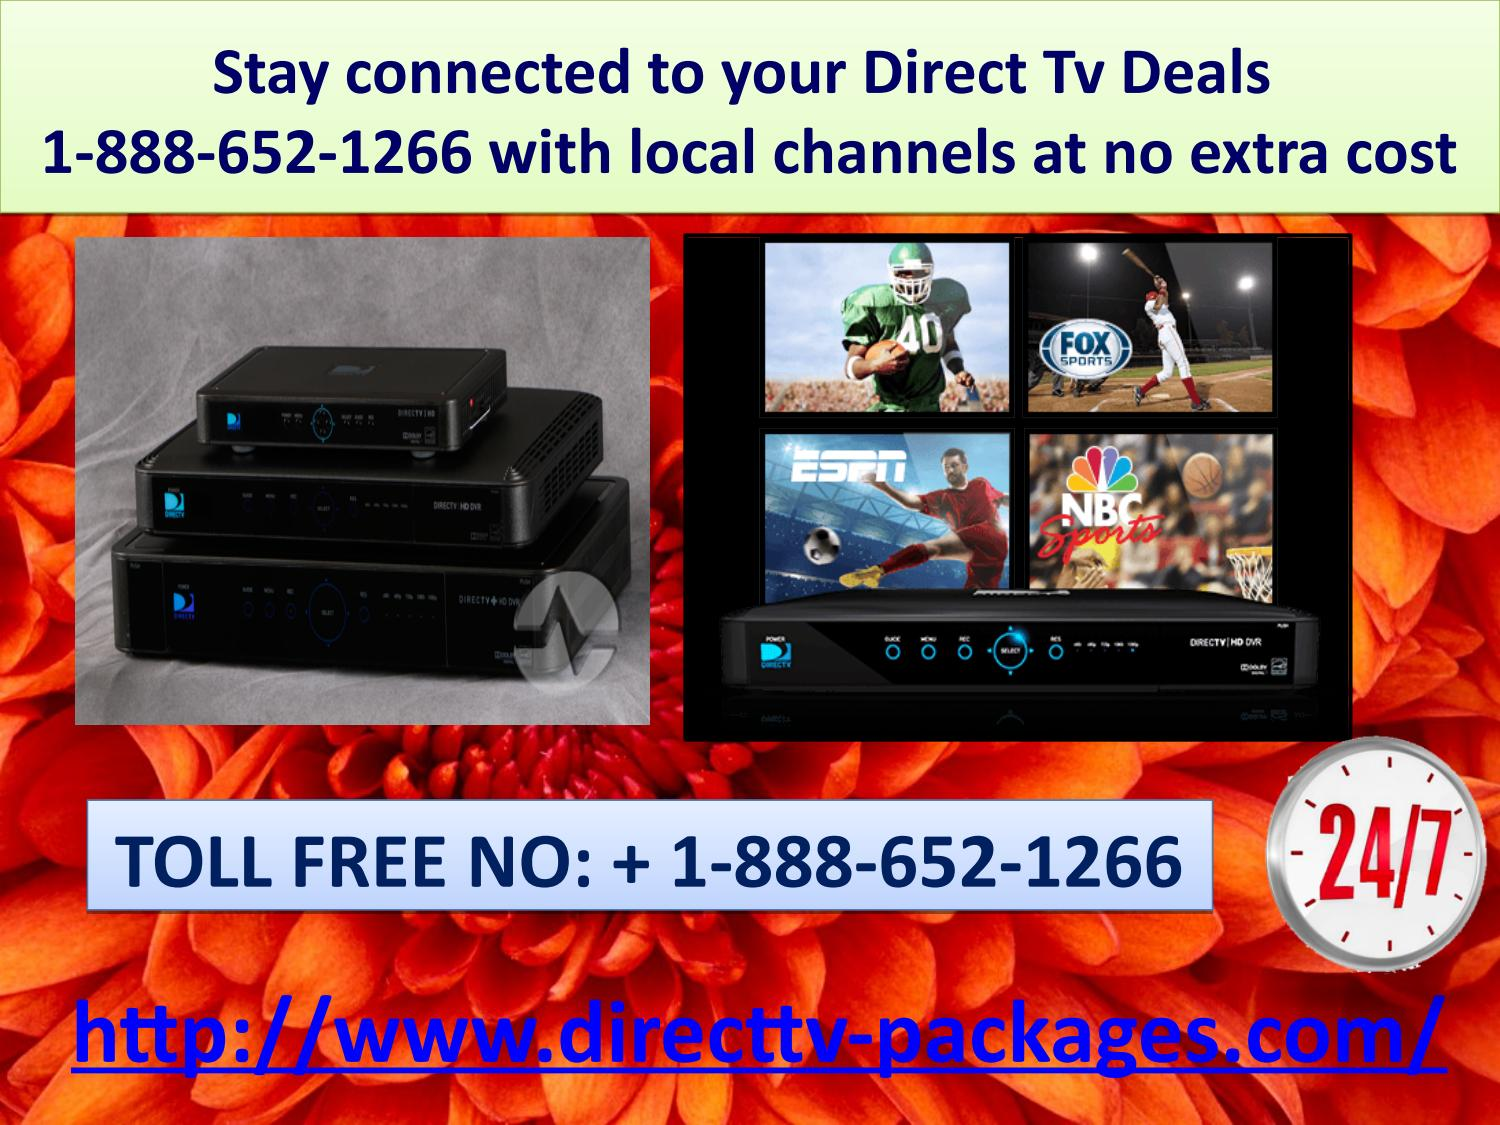 Stay connected to your Direct Tv Deals 1-888-652-1266 with